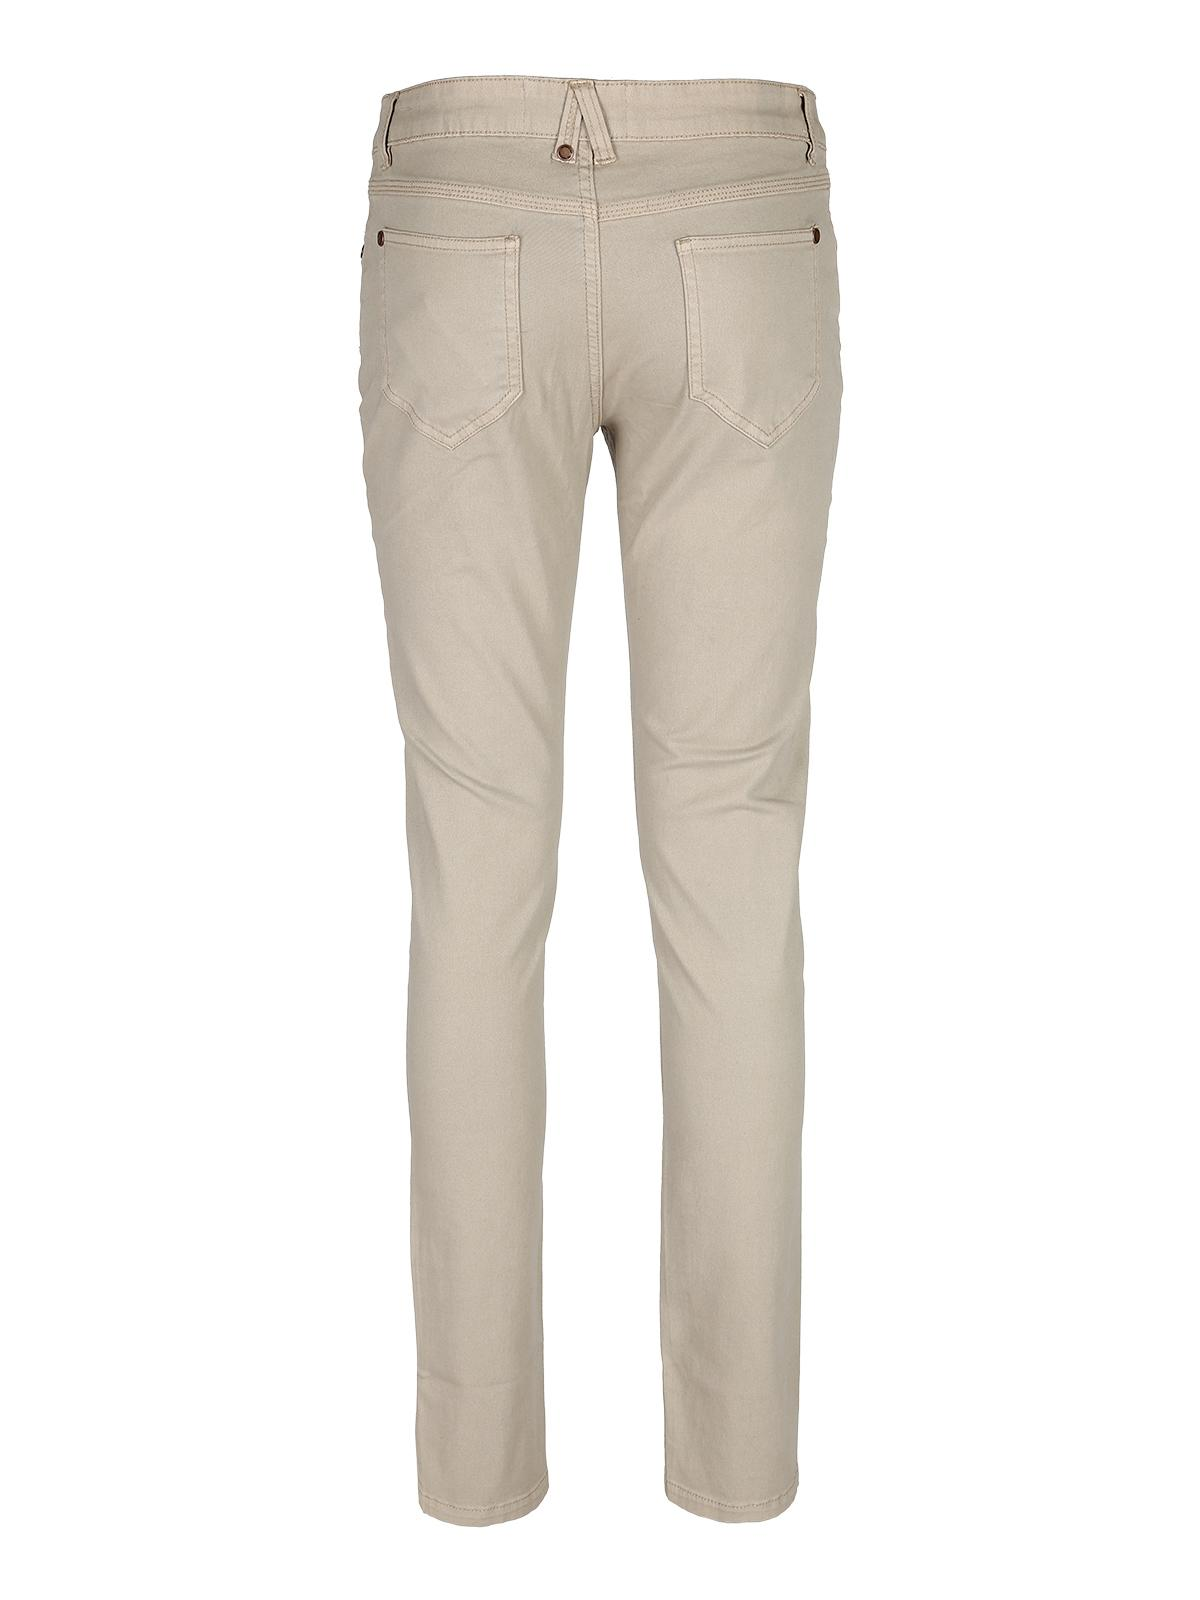 Pantaloni 5 tasche in cotone slim fit the people rep